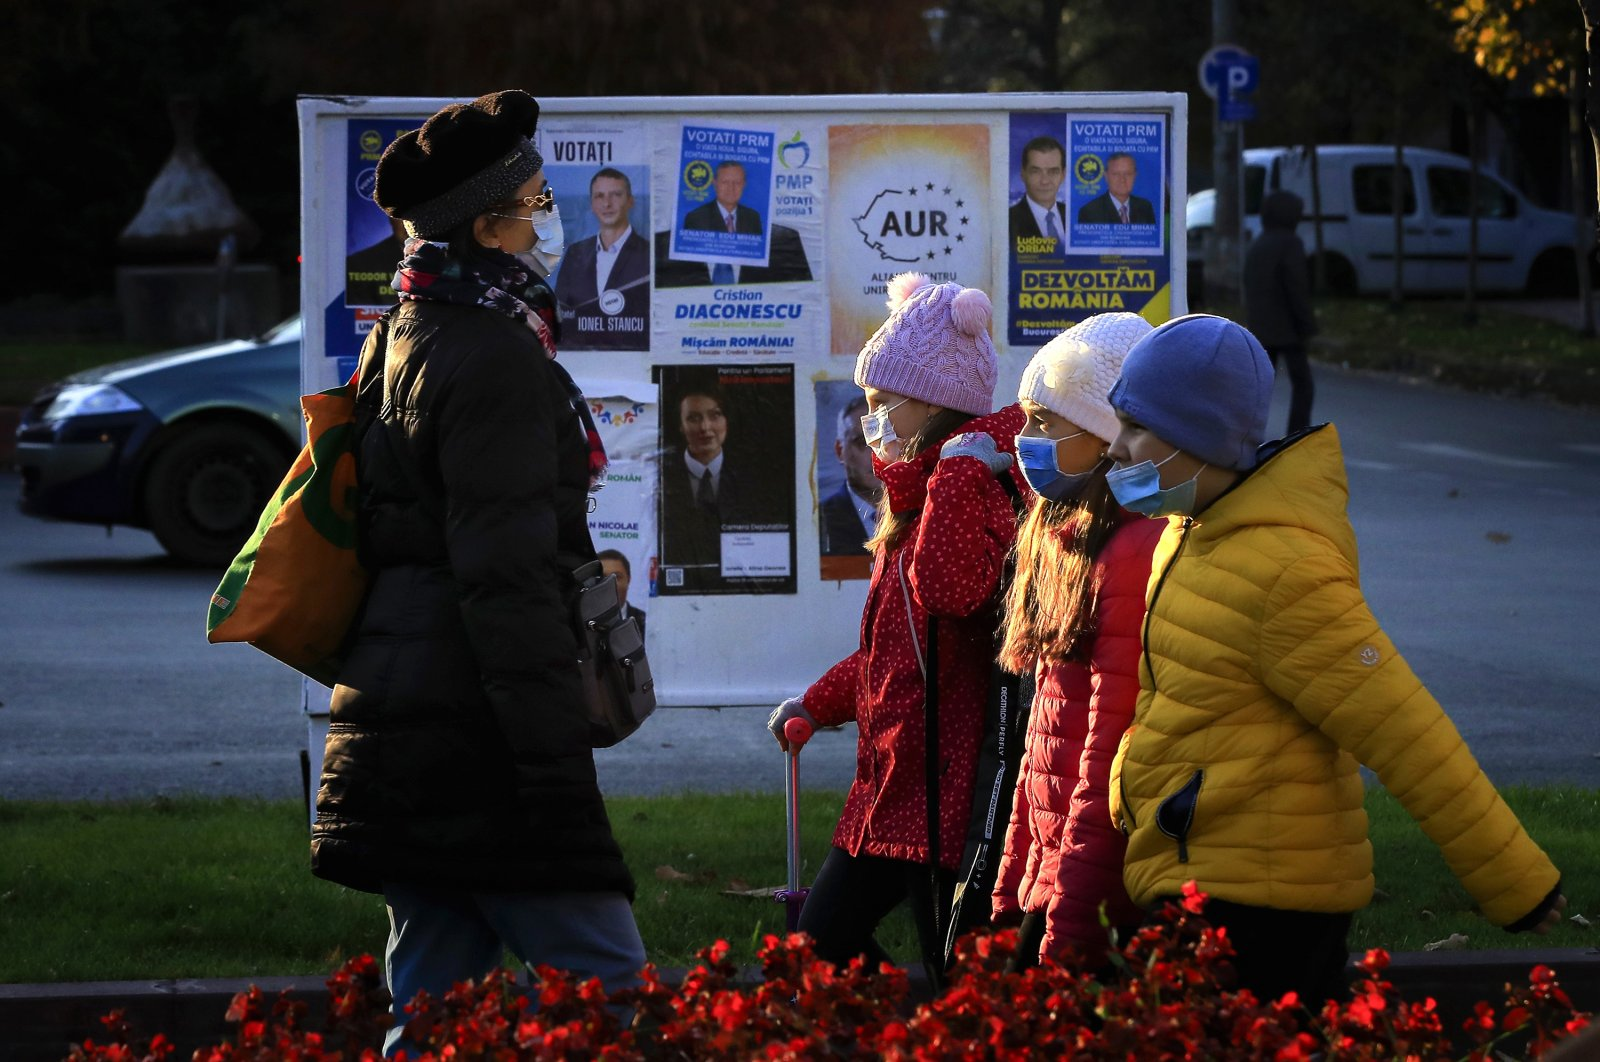 Three children and a woman (L), wearing protective masks, cross paths as they pass by a parliamentary elections campaign board in Bucharest, Romania, Nov. 23, 2020. (EPA Photo)